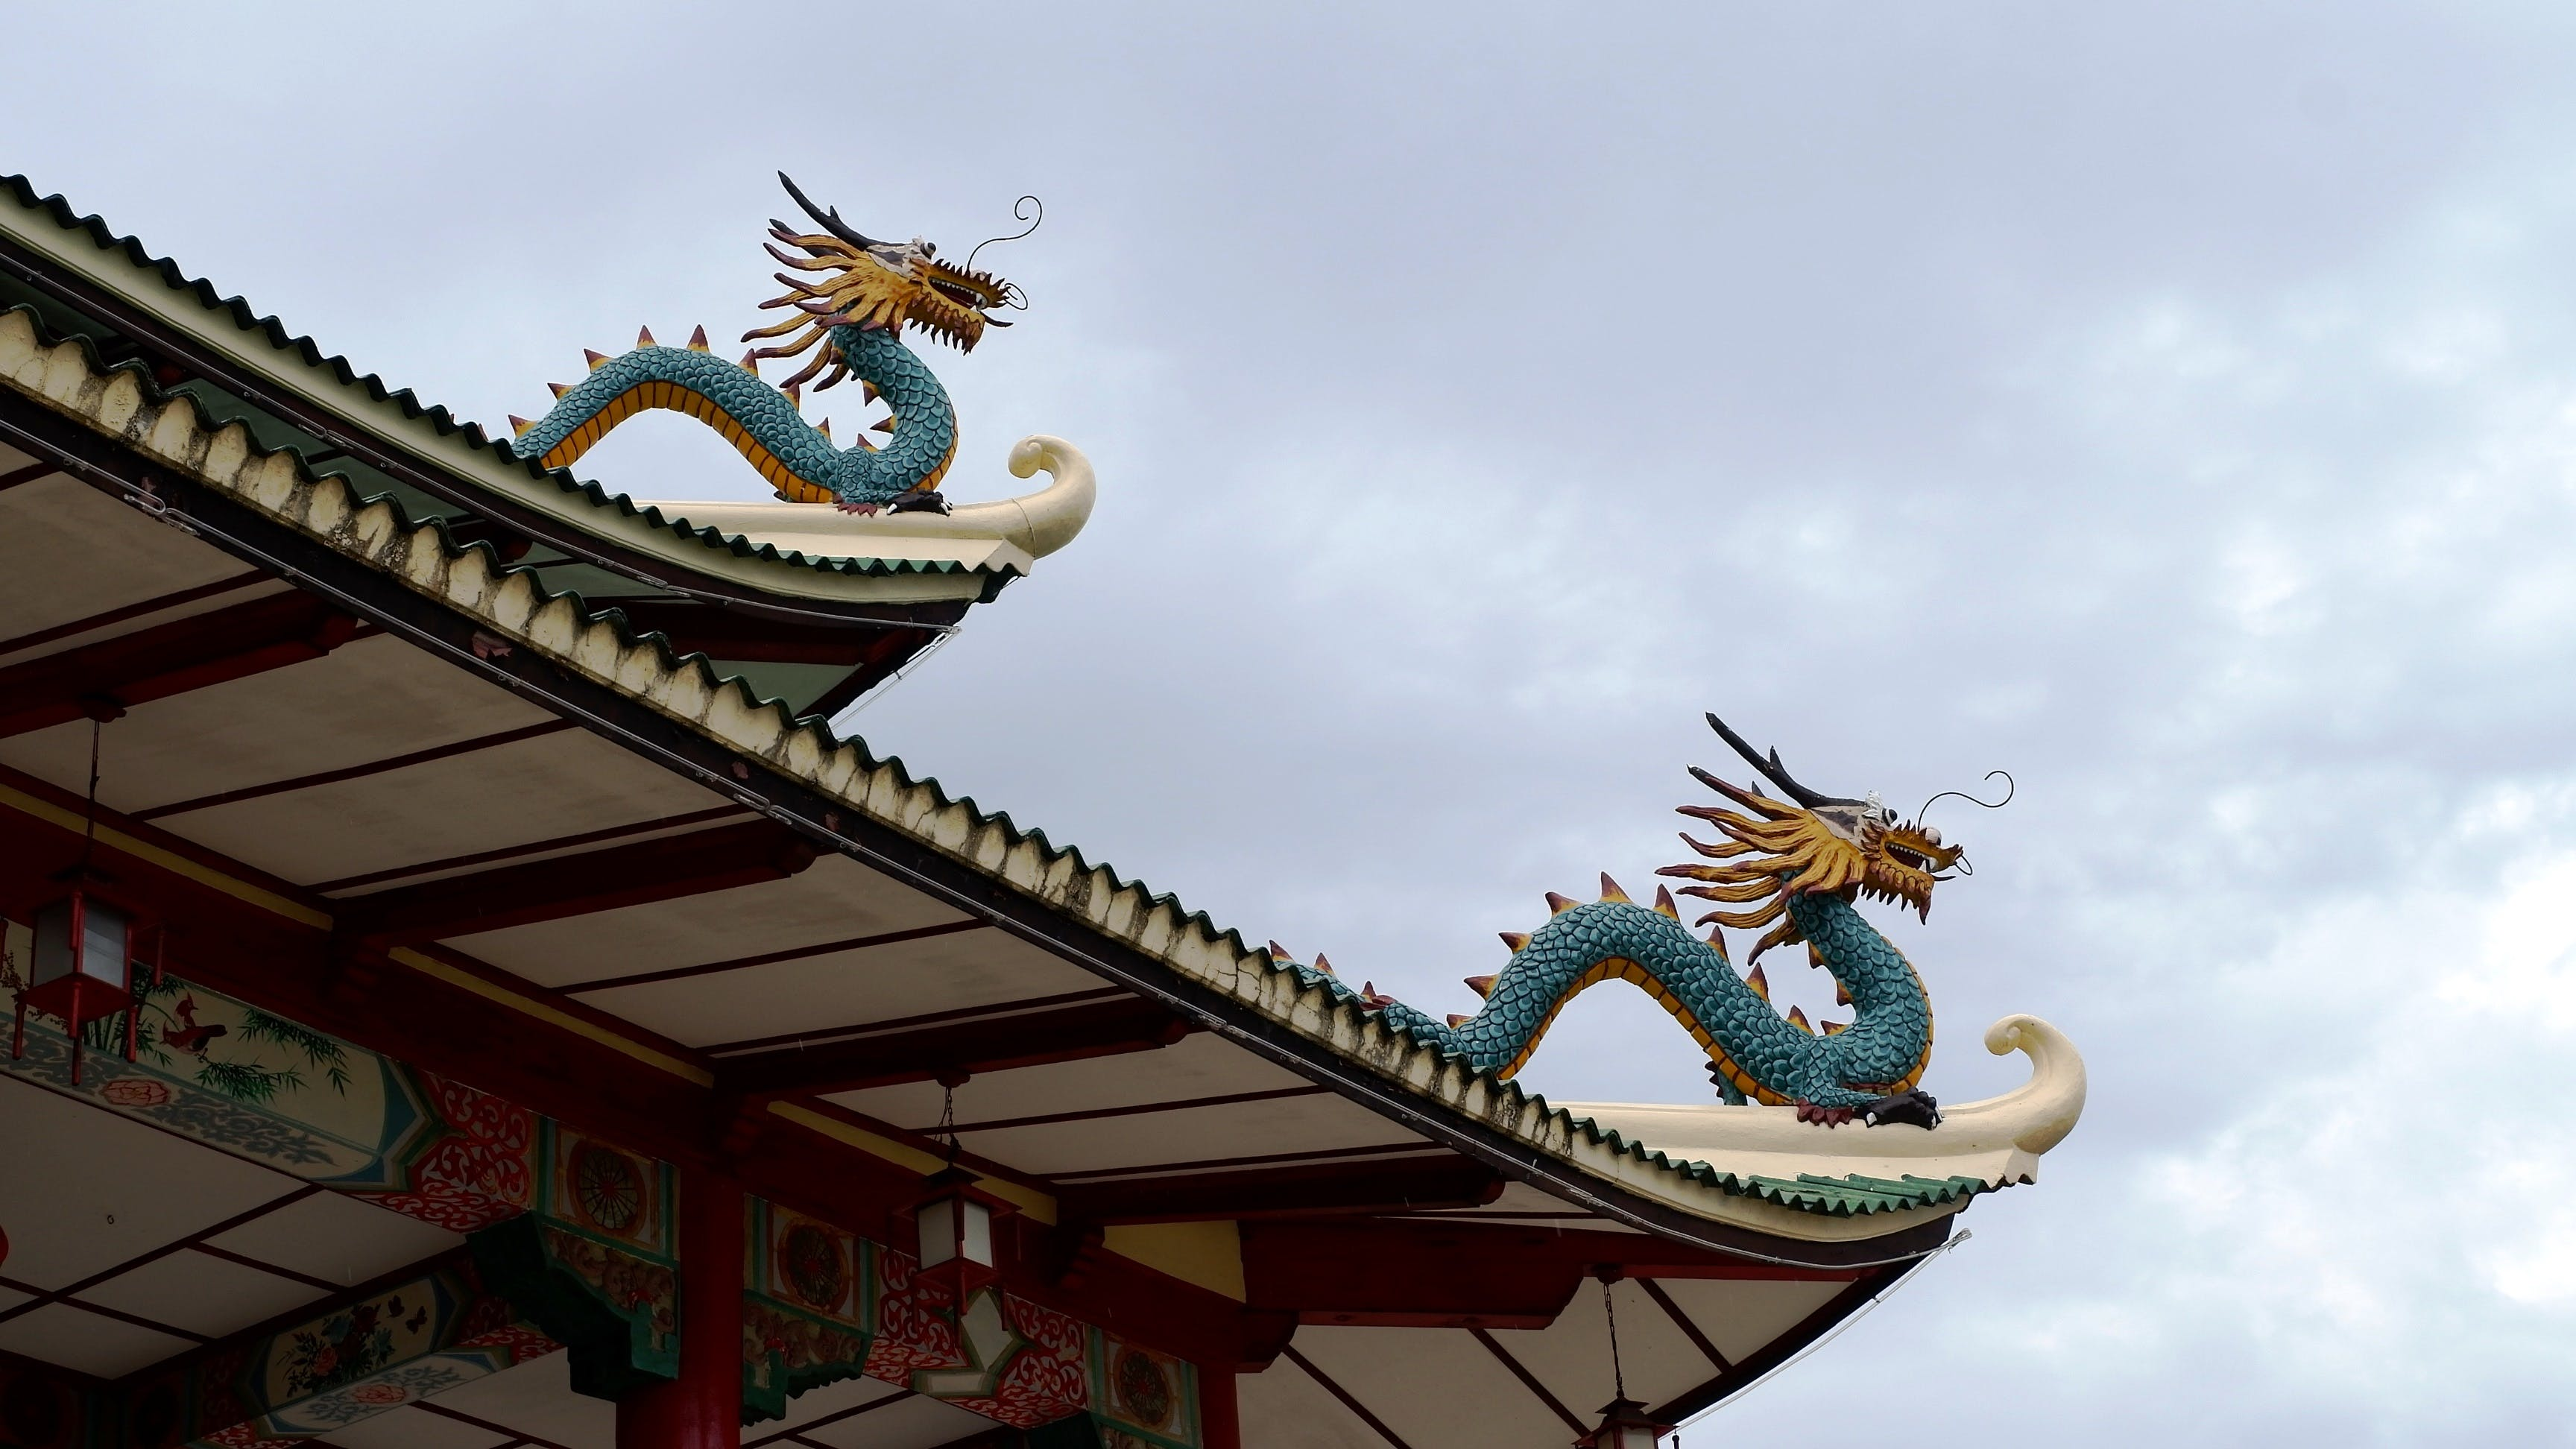 Free stock photo of dragon, Philippines, Taoist Temple